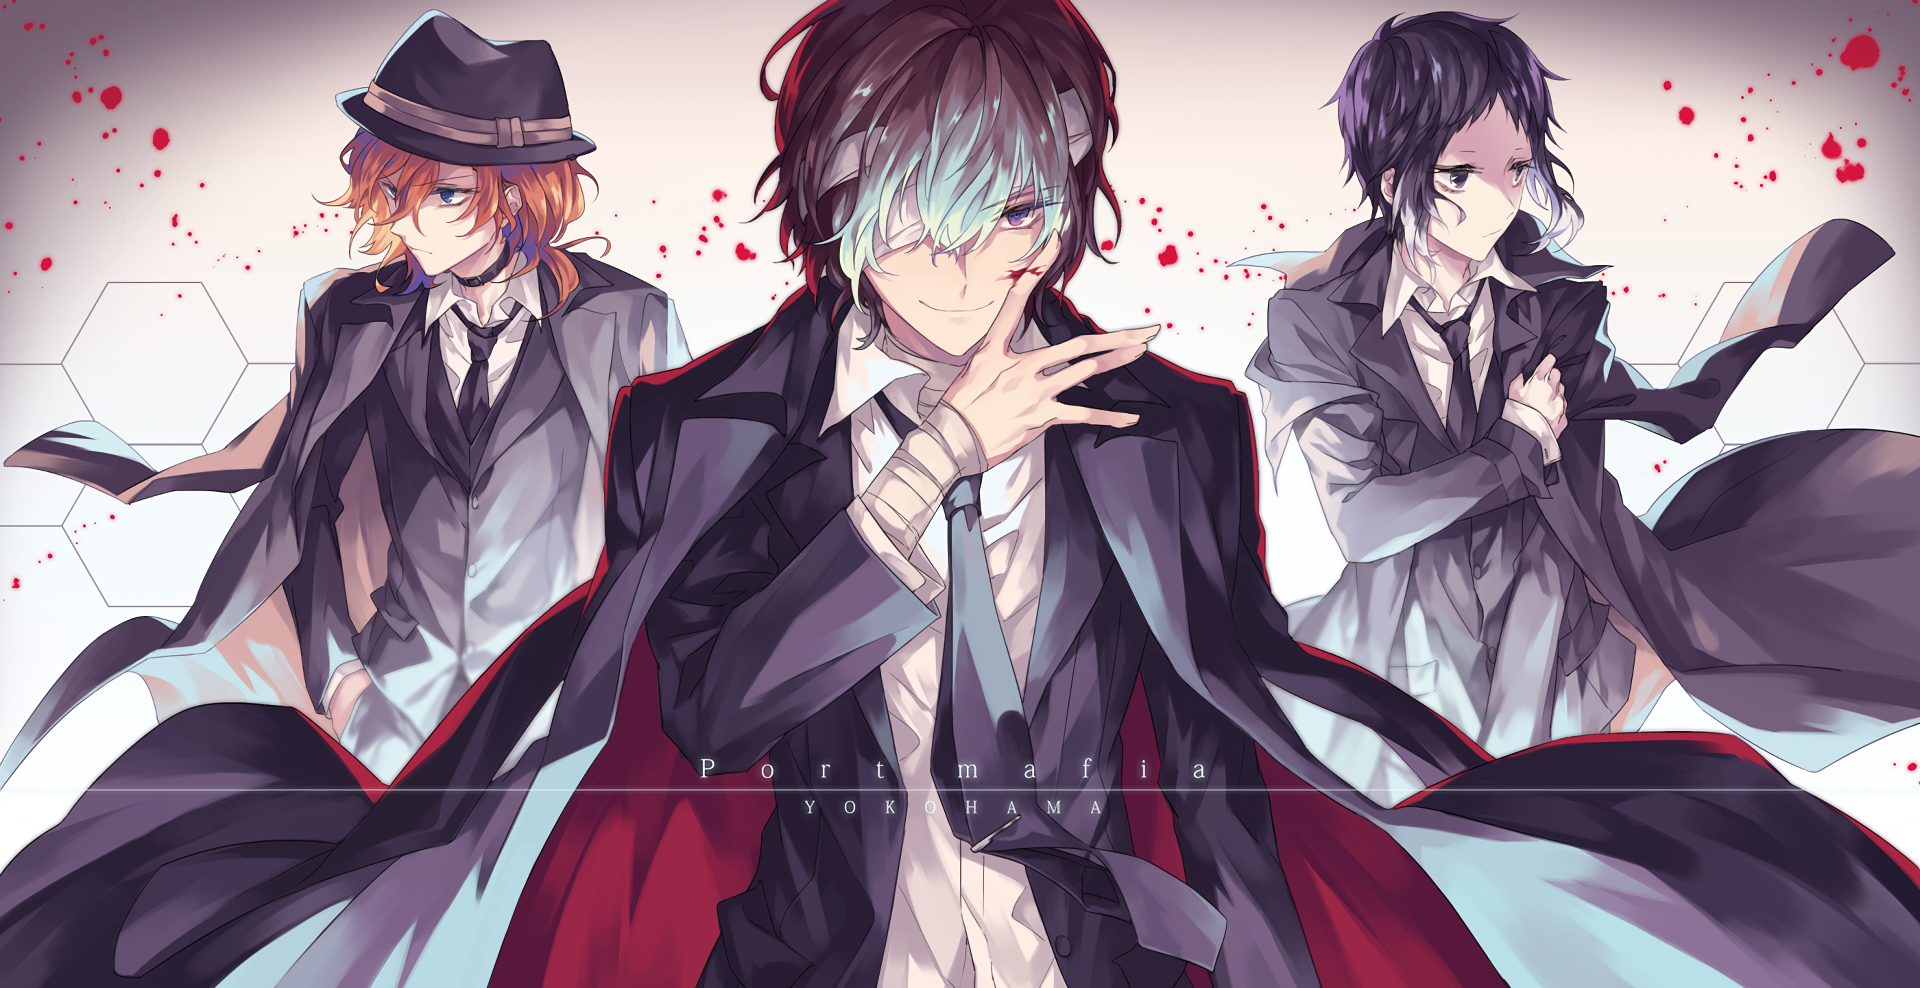 Bungou Stray Dogs Wallpapers Top Free Bungou Stray Dogs Backgrounds Wallpaperaccess